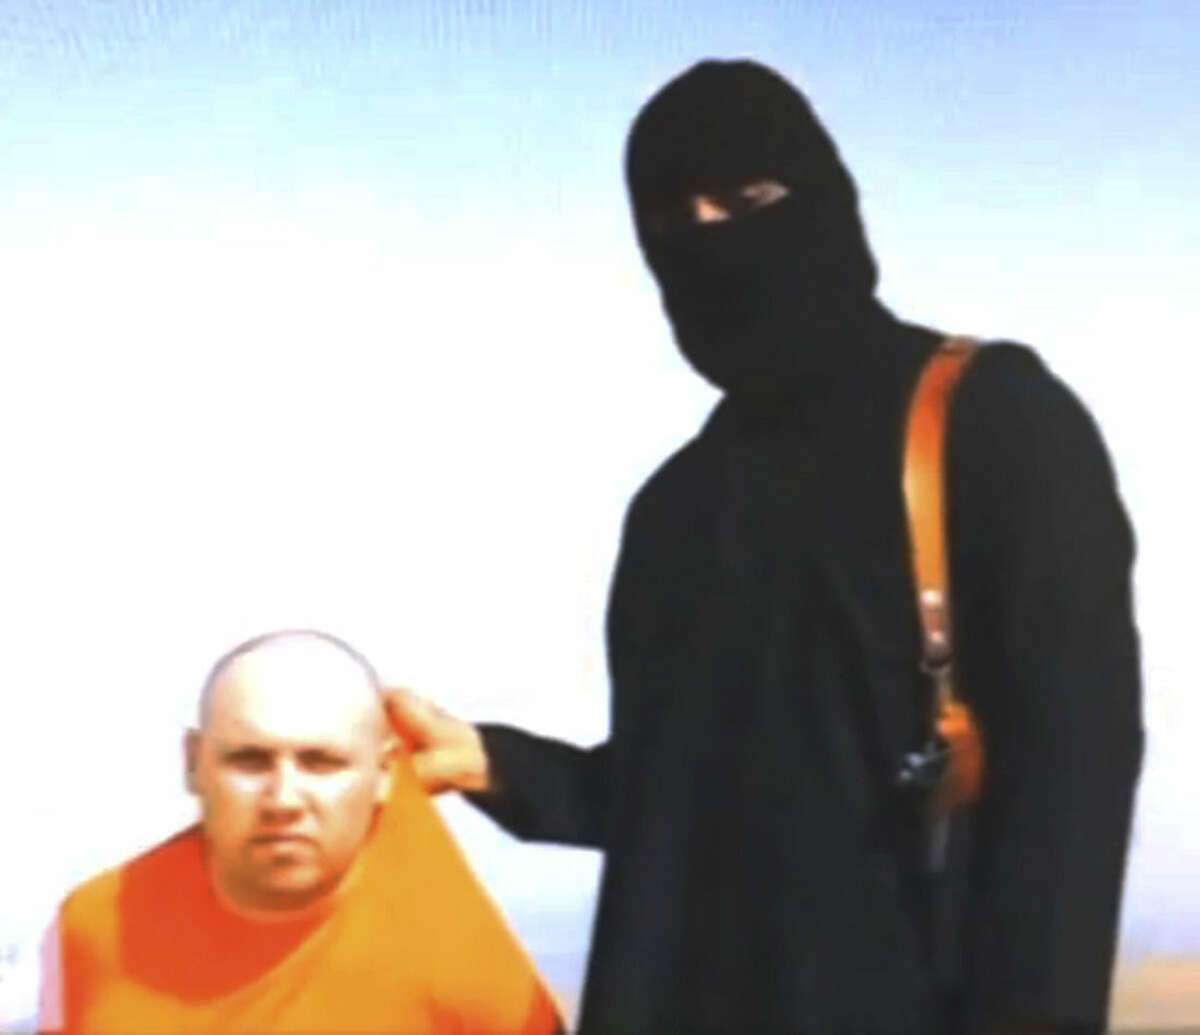 FILE - In this file still image from an undated video released by Islamic State militants on Tuesday, Aug. 19, 2014, purports to show journalist Steven Sotloff being held by the militant group. Islamic State militants called American journalist James Foley?'s gruesome videotaped beheading revenge for U.S. airstrikes against the group, and they still hold at least three other Americans hostage, including Sotloff. (AP Photo, File)